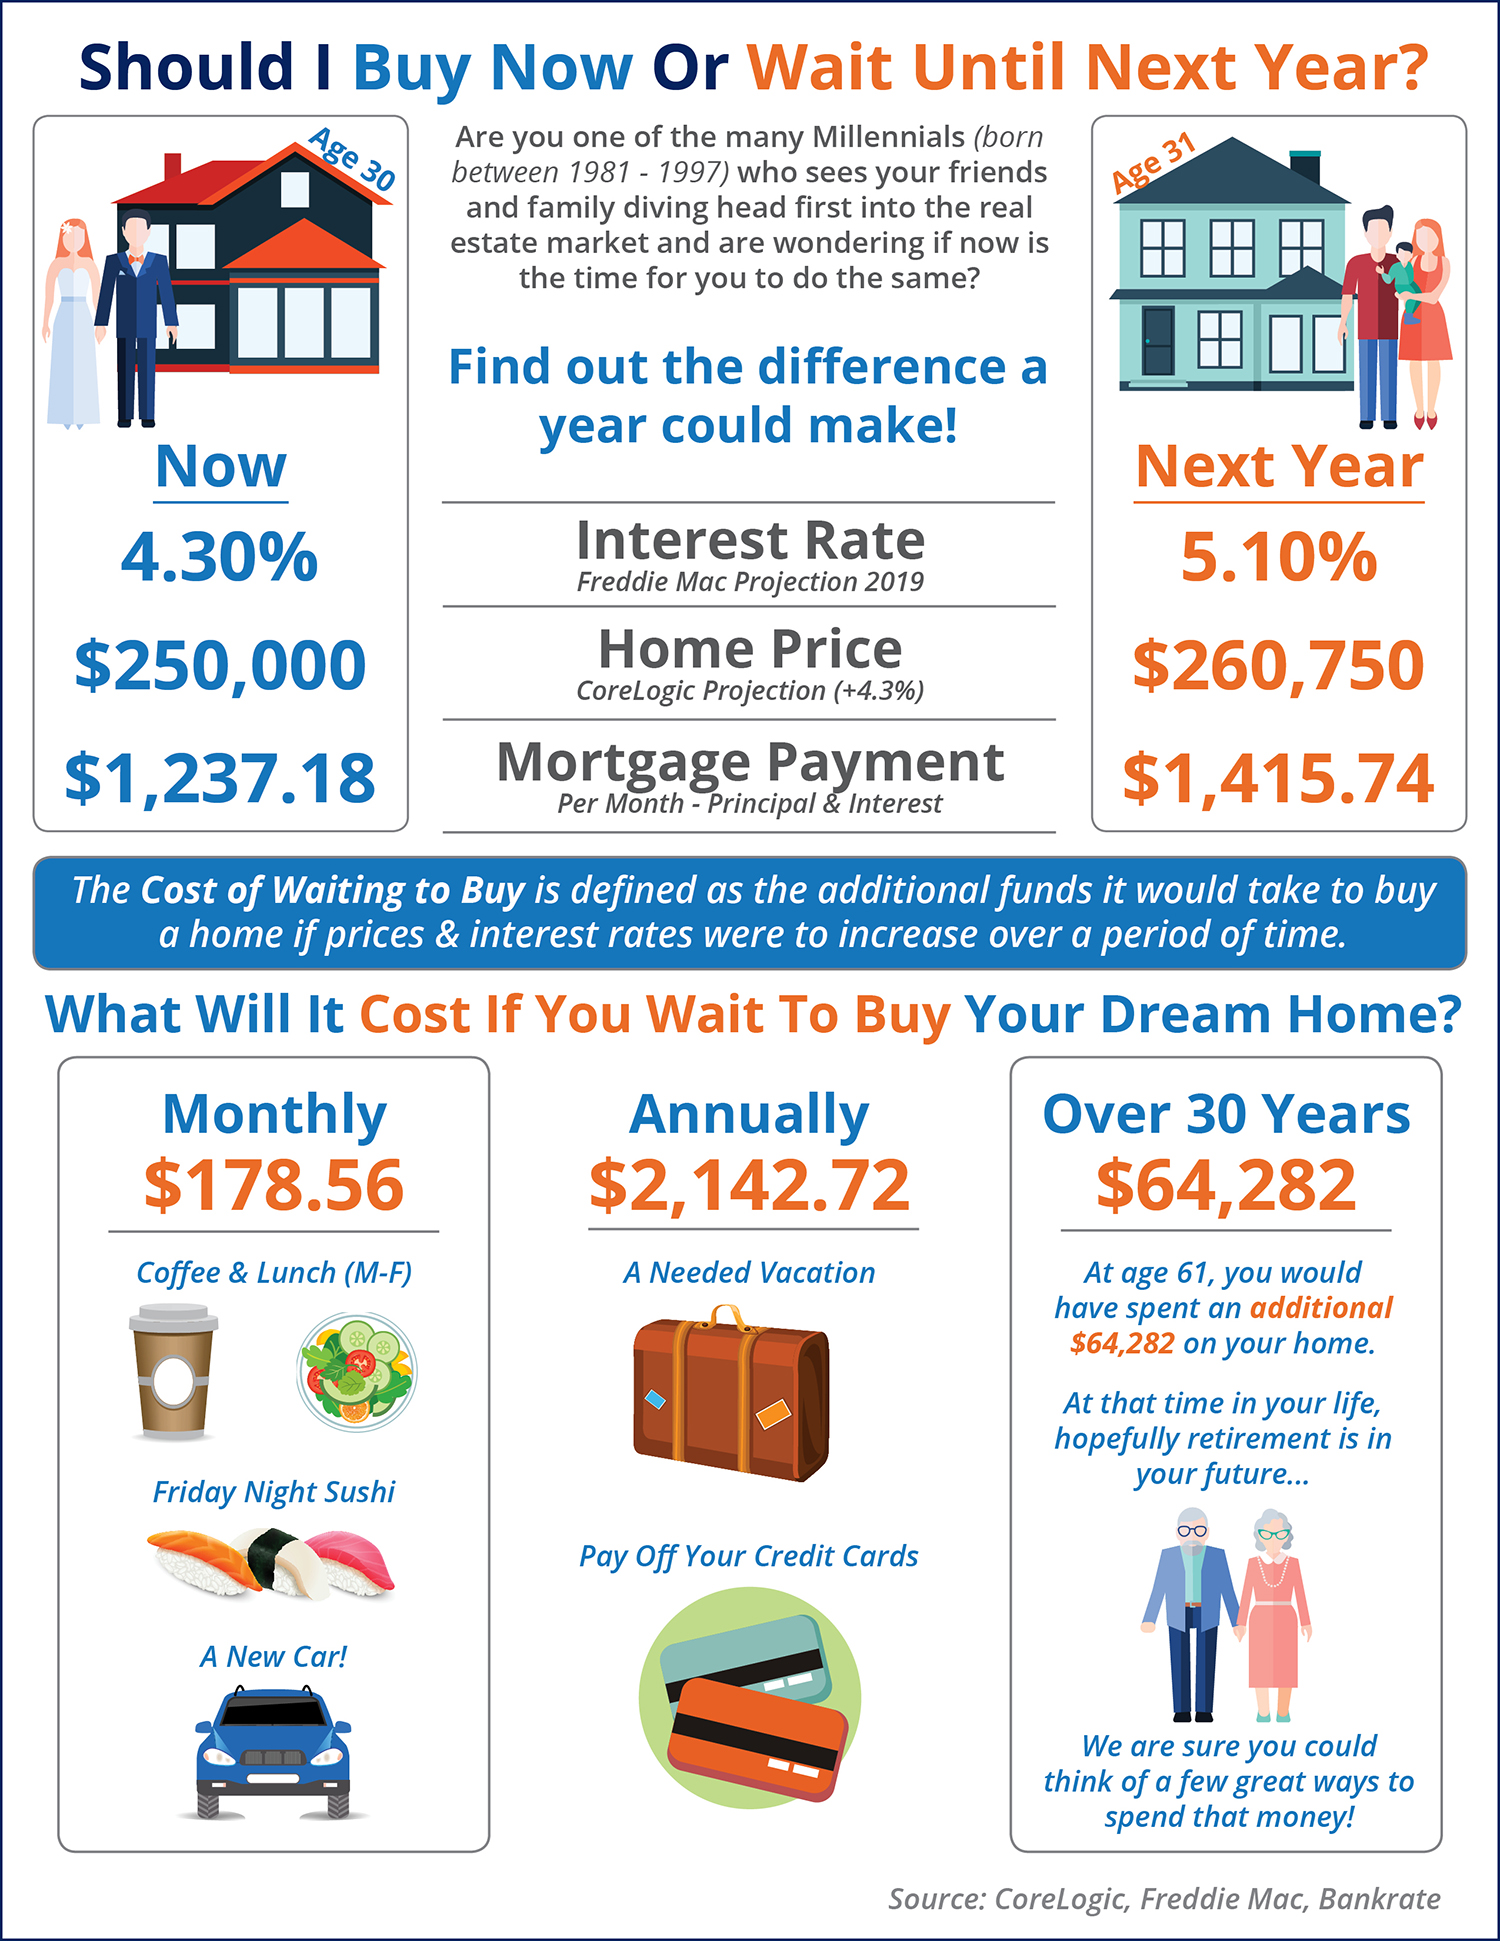 Should I Wait until next Year to Buy? Or Buy Now? [INFOGRAPHIC] | Bridge Builders